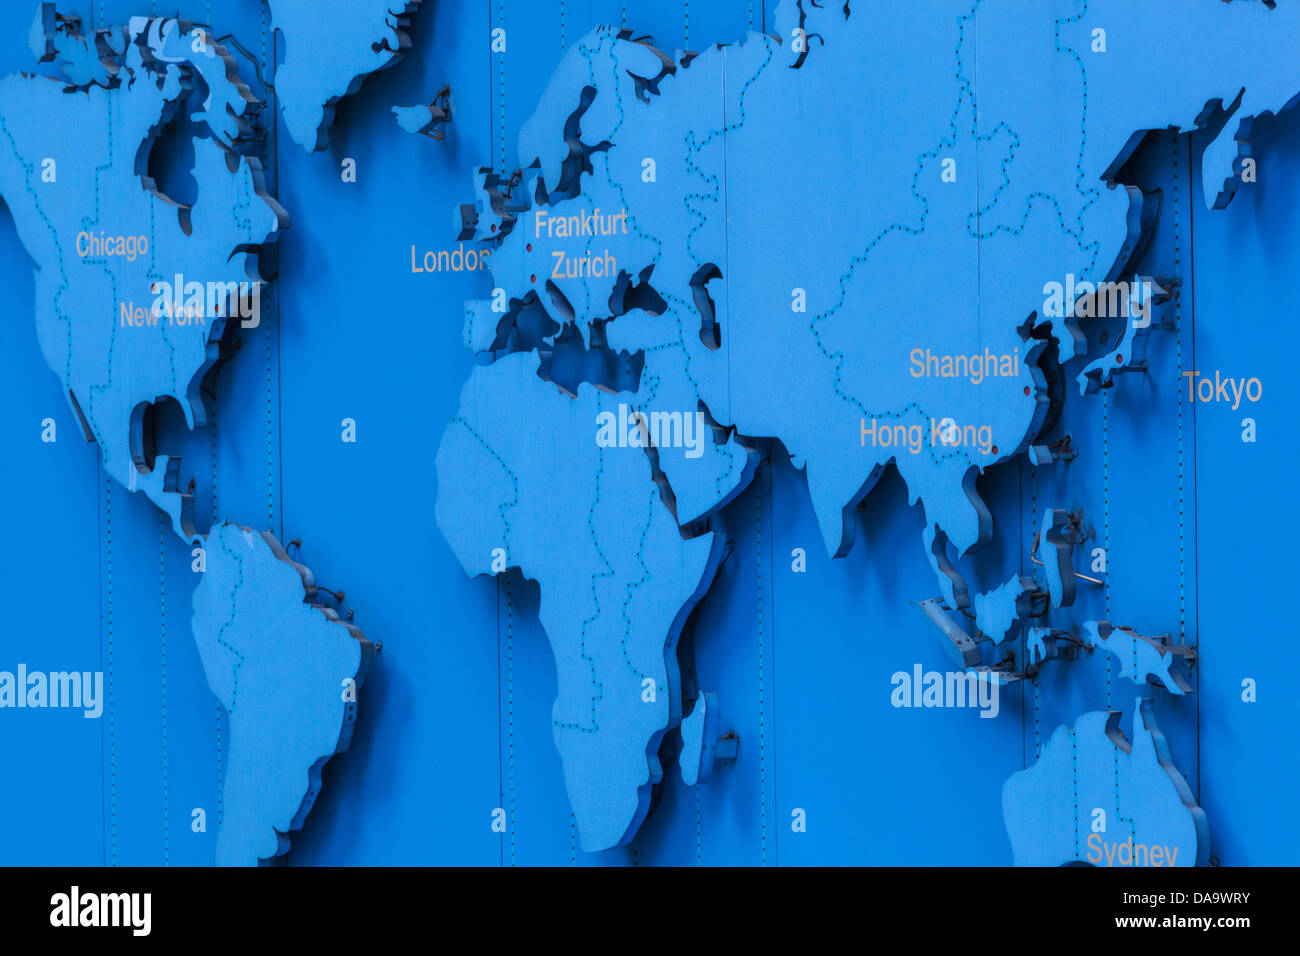 China hong kong map stock photos china hong kong map stock images china hong kong hongkong world map showing main financial centres stock image gumiabroncs